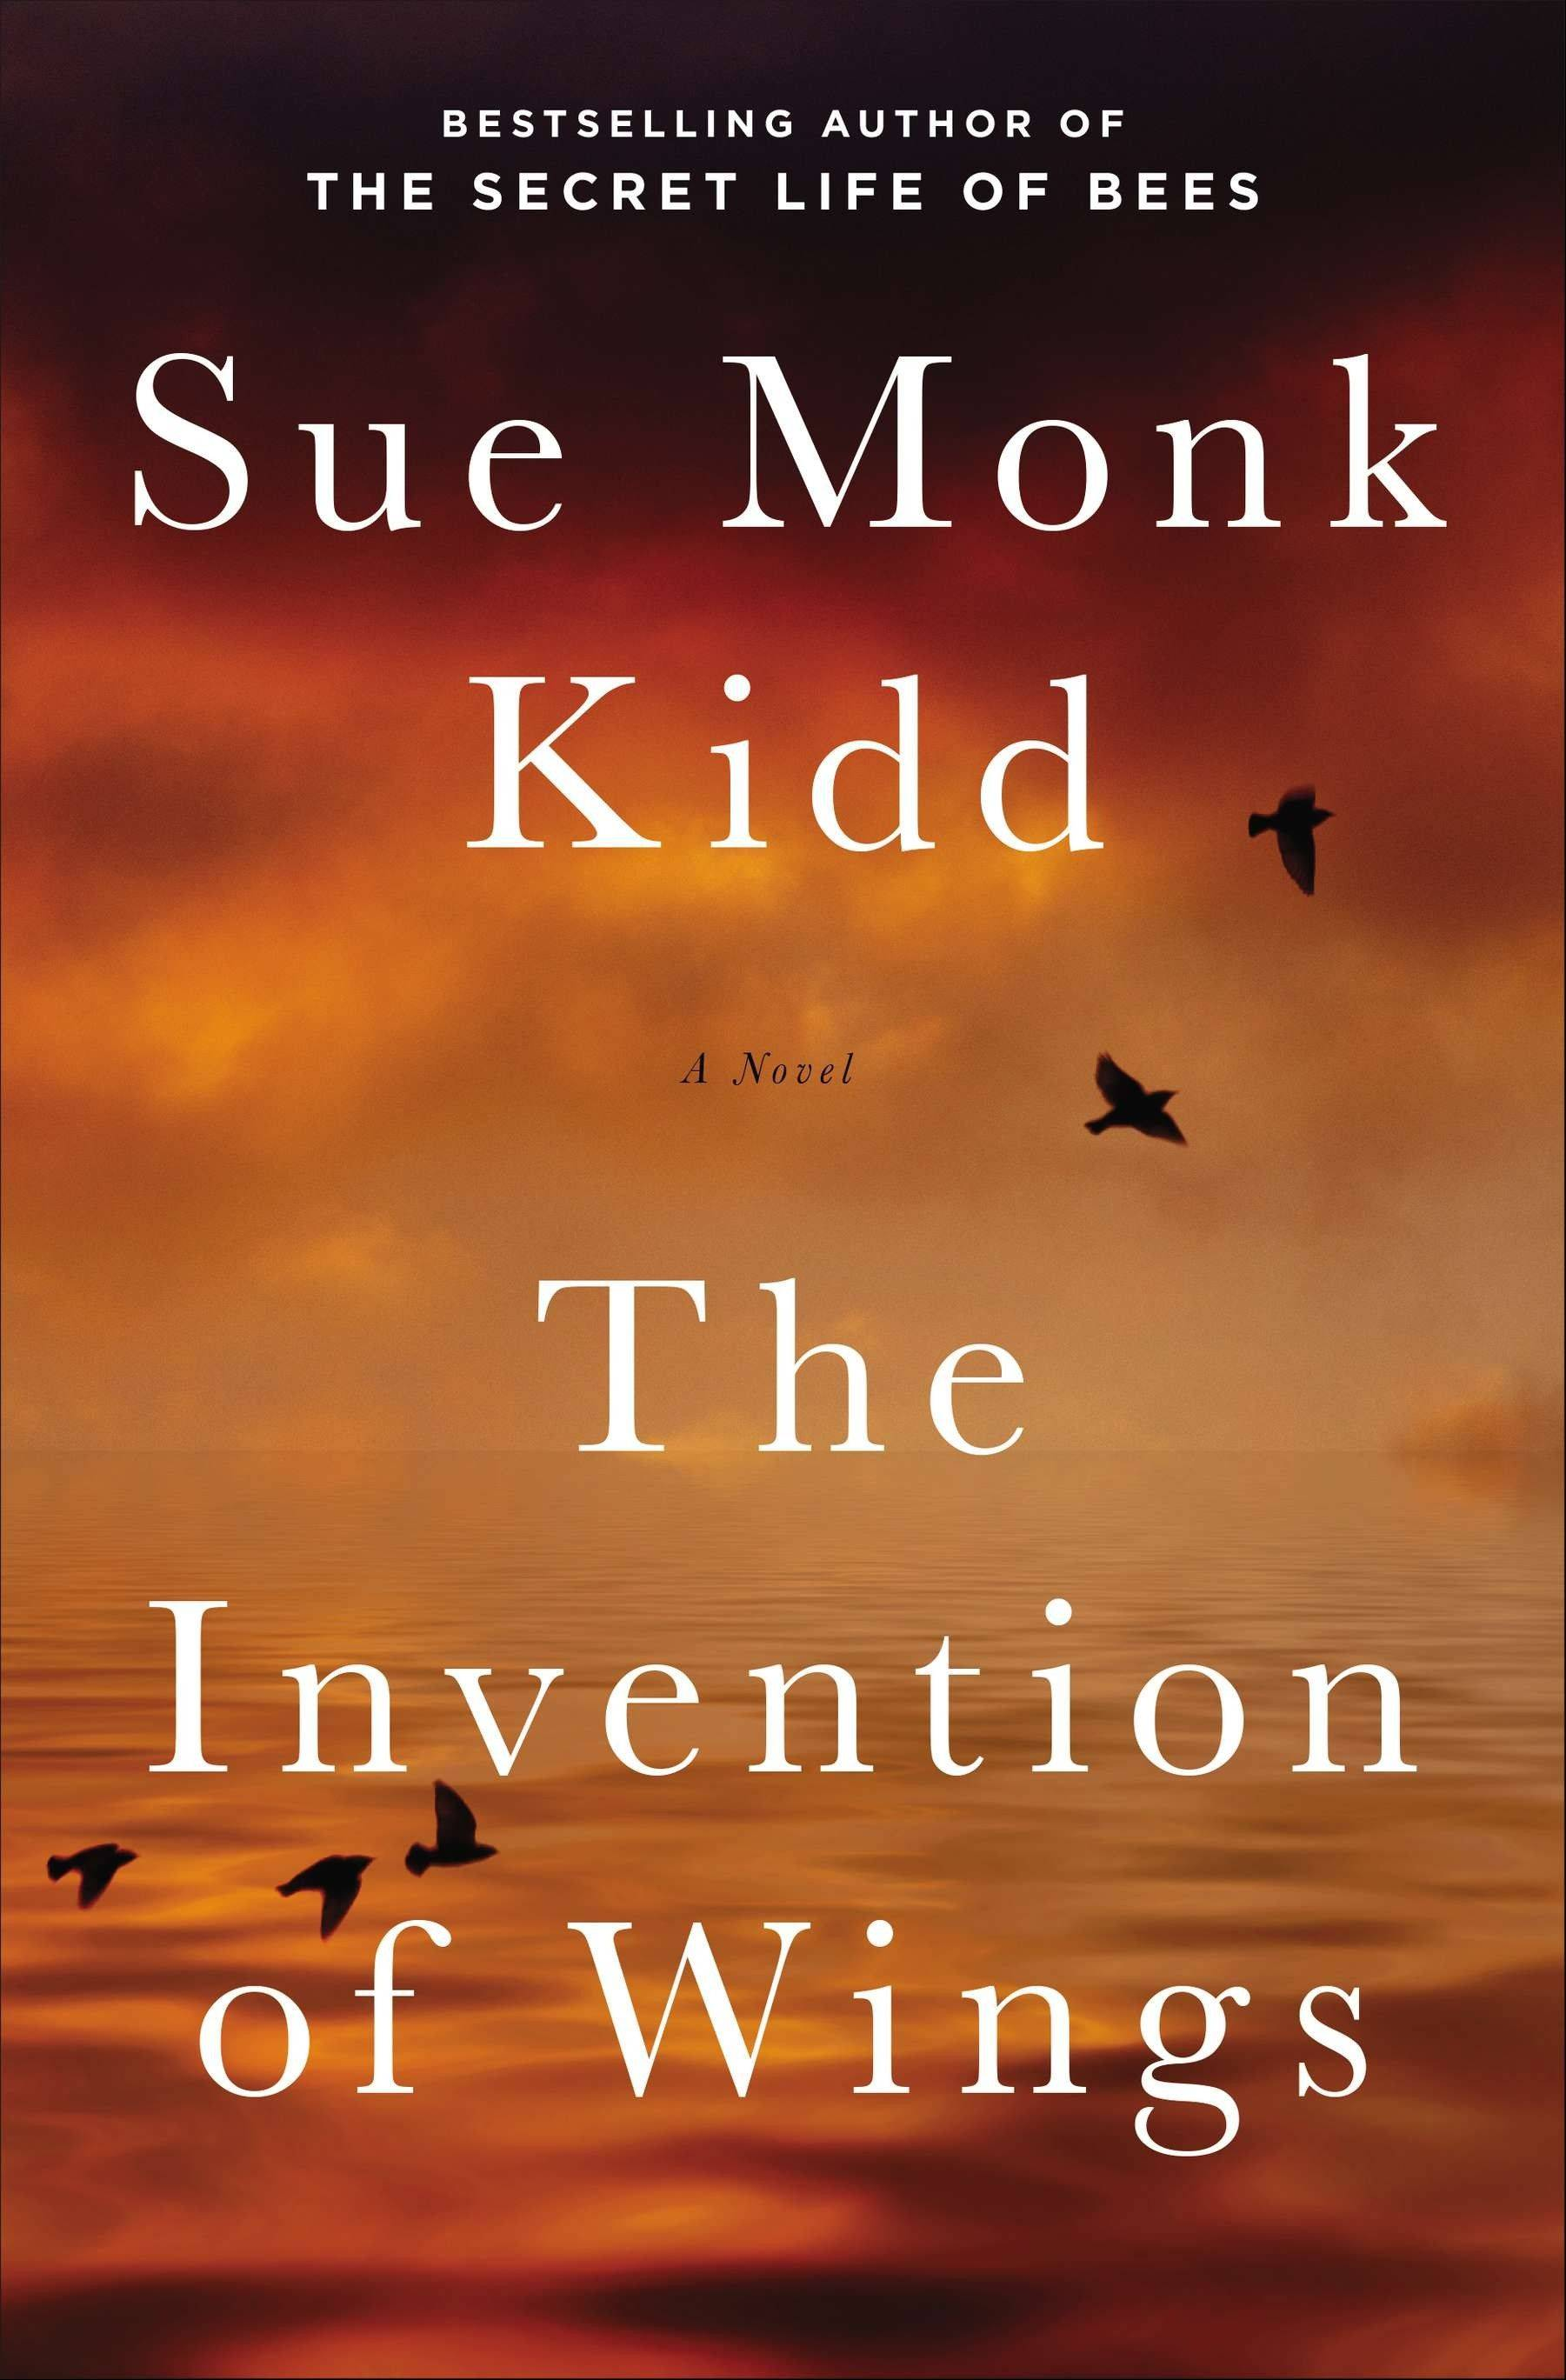 �The Invention of Wings� by Sue Monk Kidd is based on the life of Sarah Grimke, a 19th-century abolitionist from an affluent plantation-owning family in North Carolina.